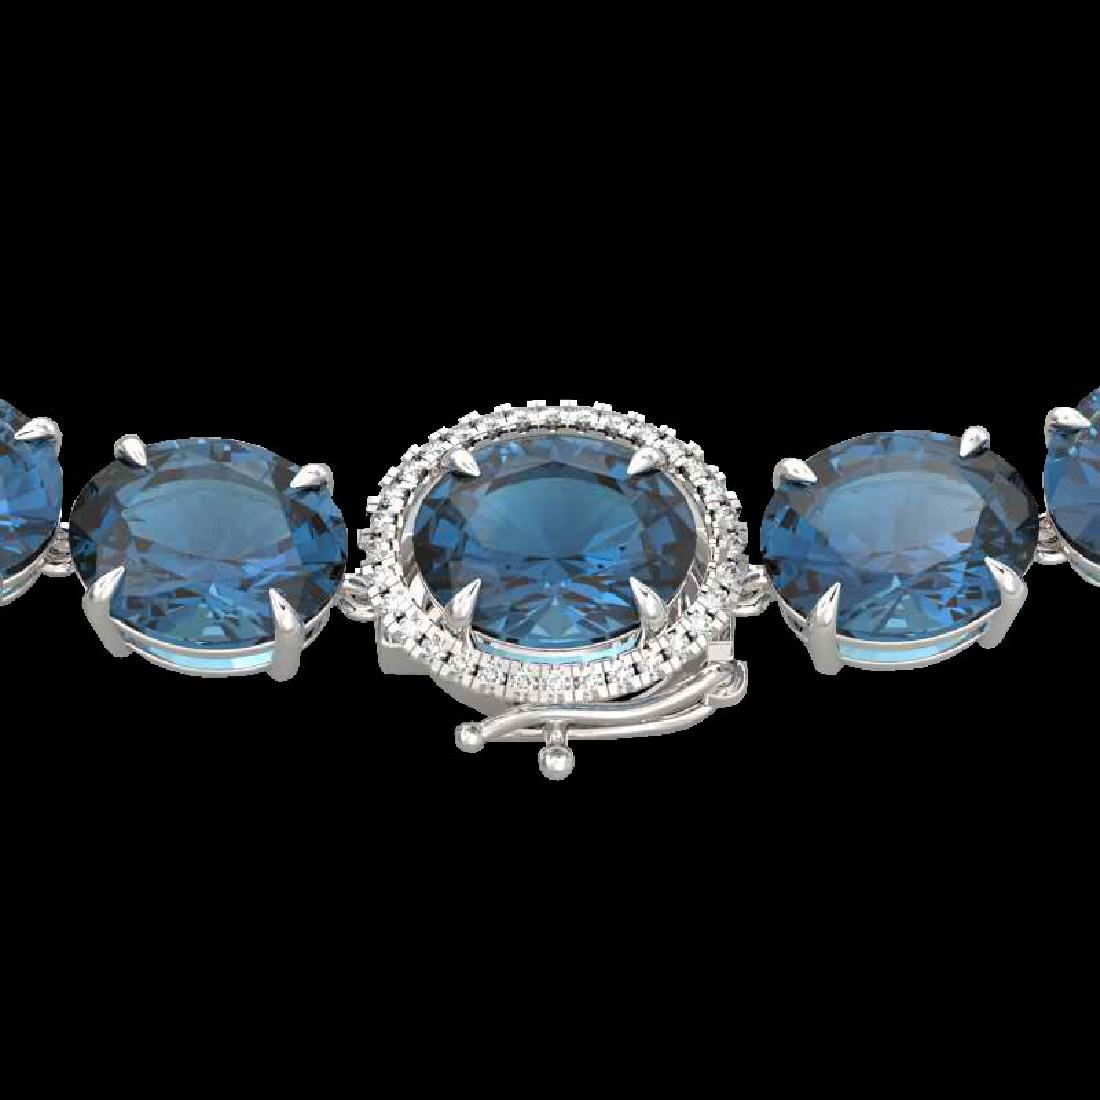 177 CTW London Blue Topaz & VS/SI Diamond Halo Micro